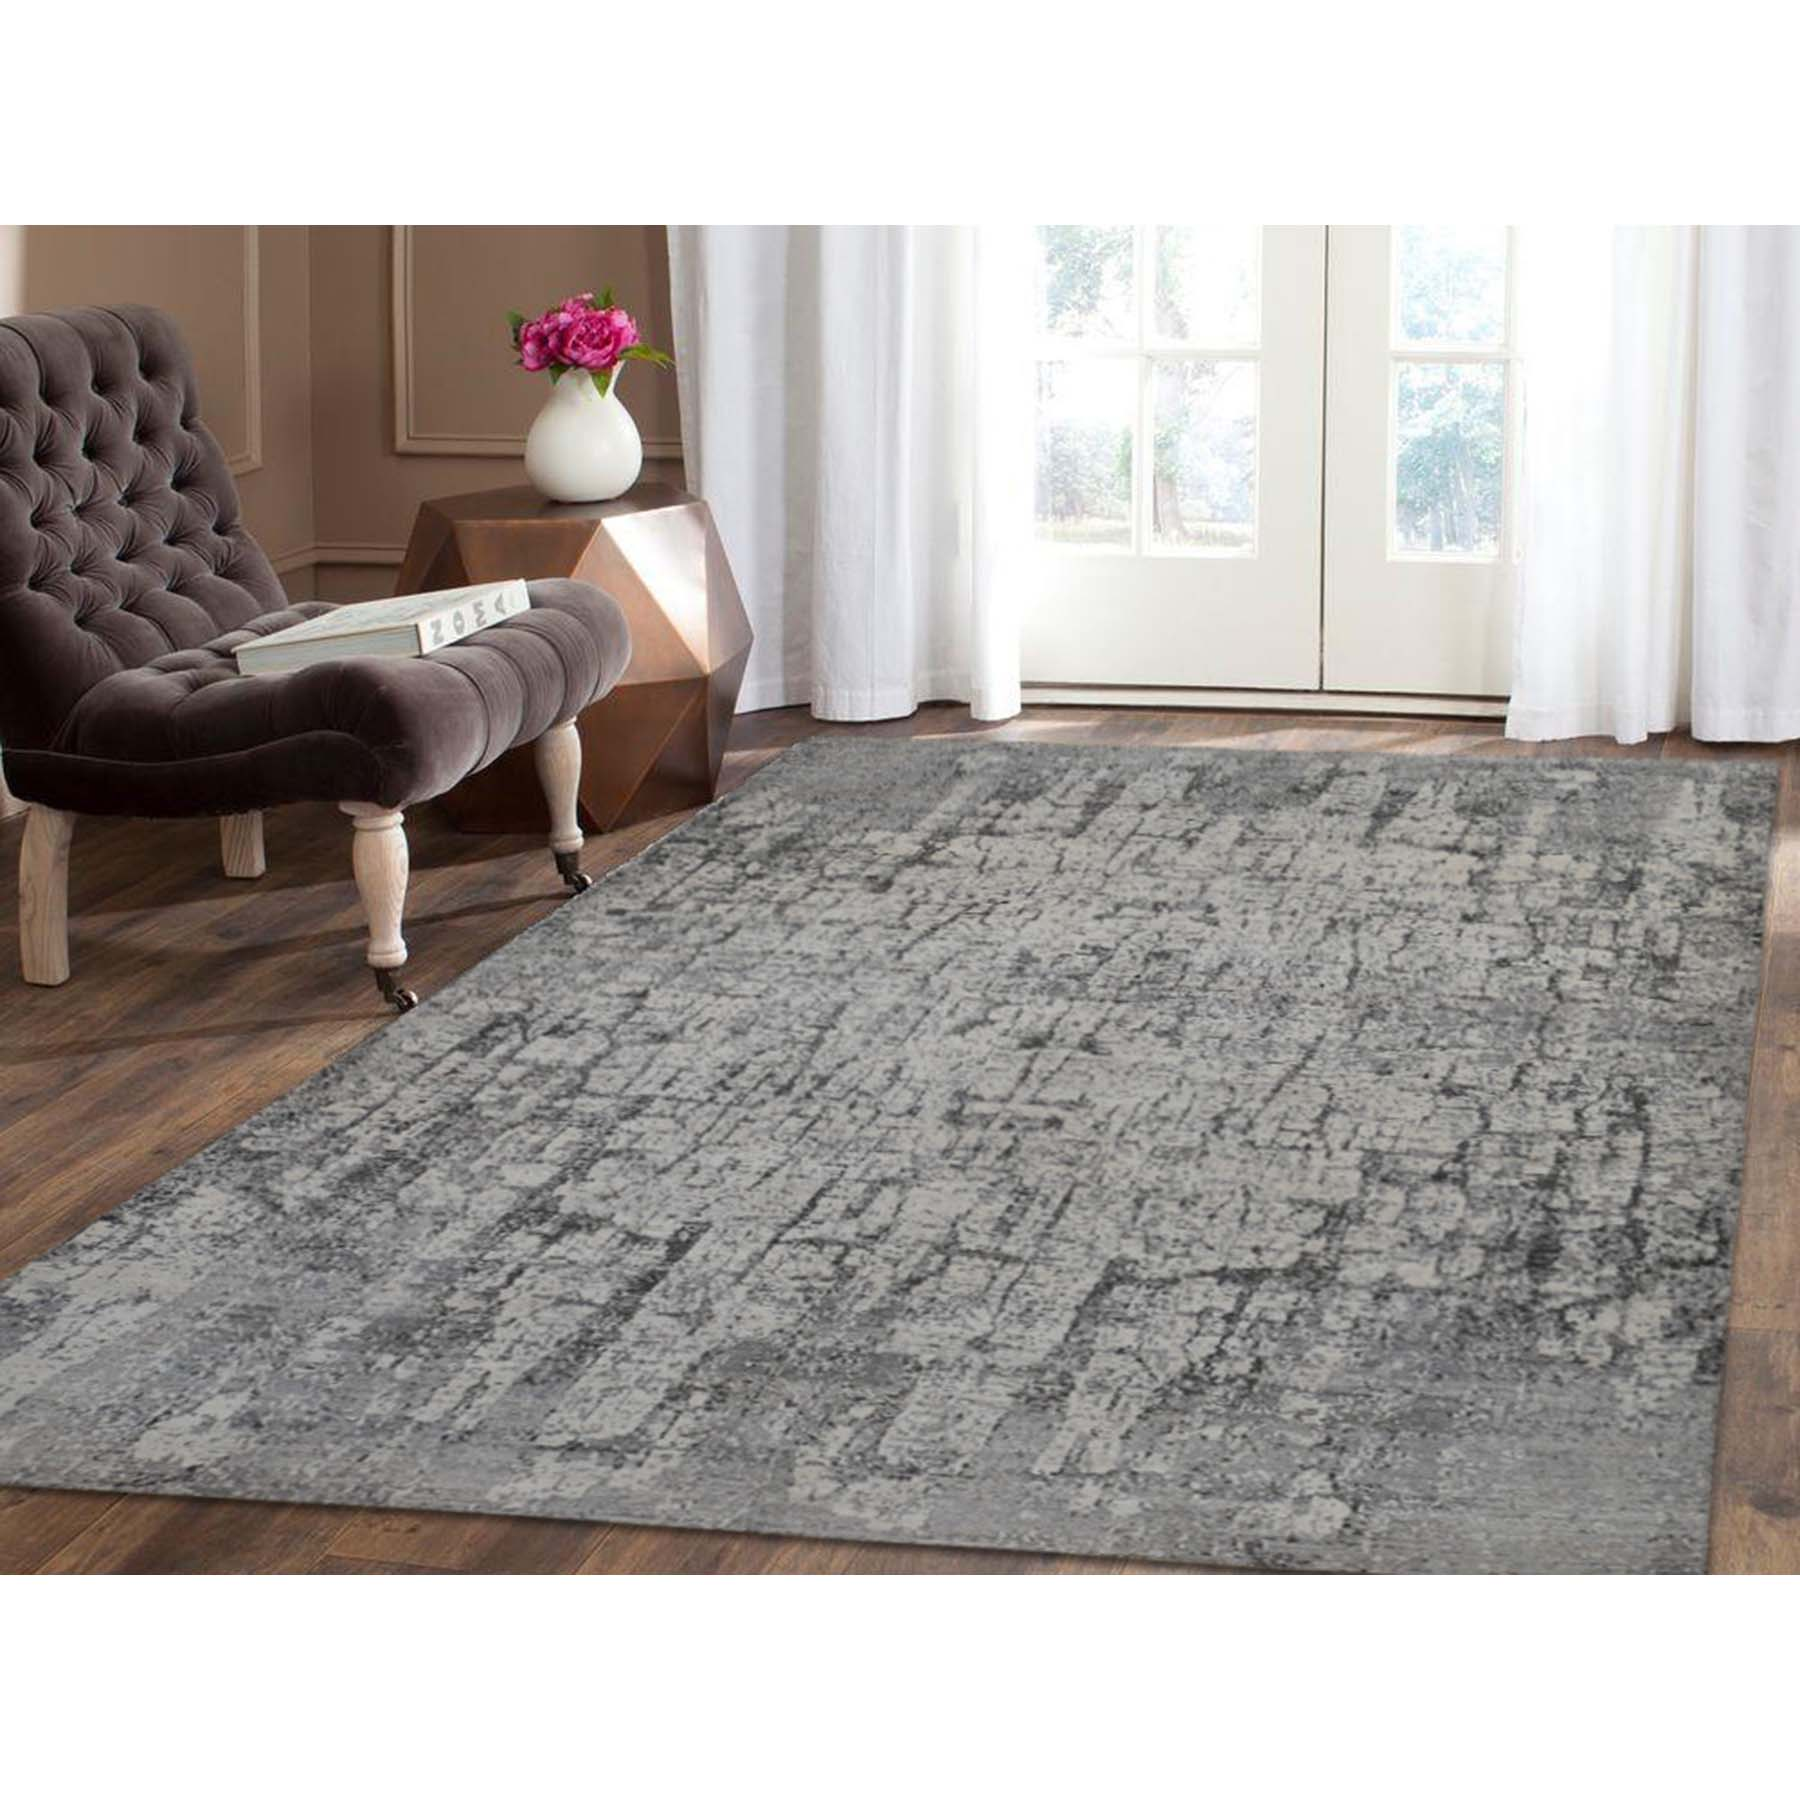 6-x9- Abstract Hand-Knotted Hi-Lo Pile THE TREE BARK Soft Wool Oriental Rug